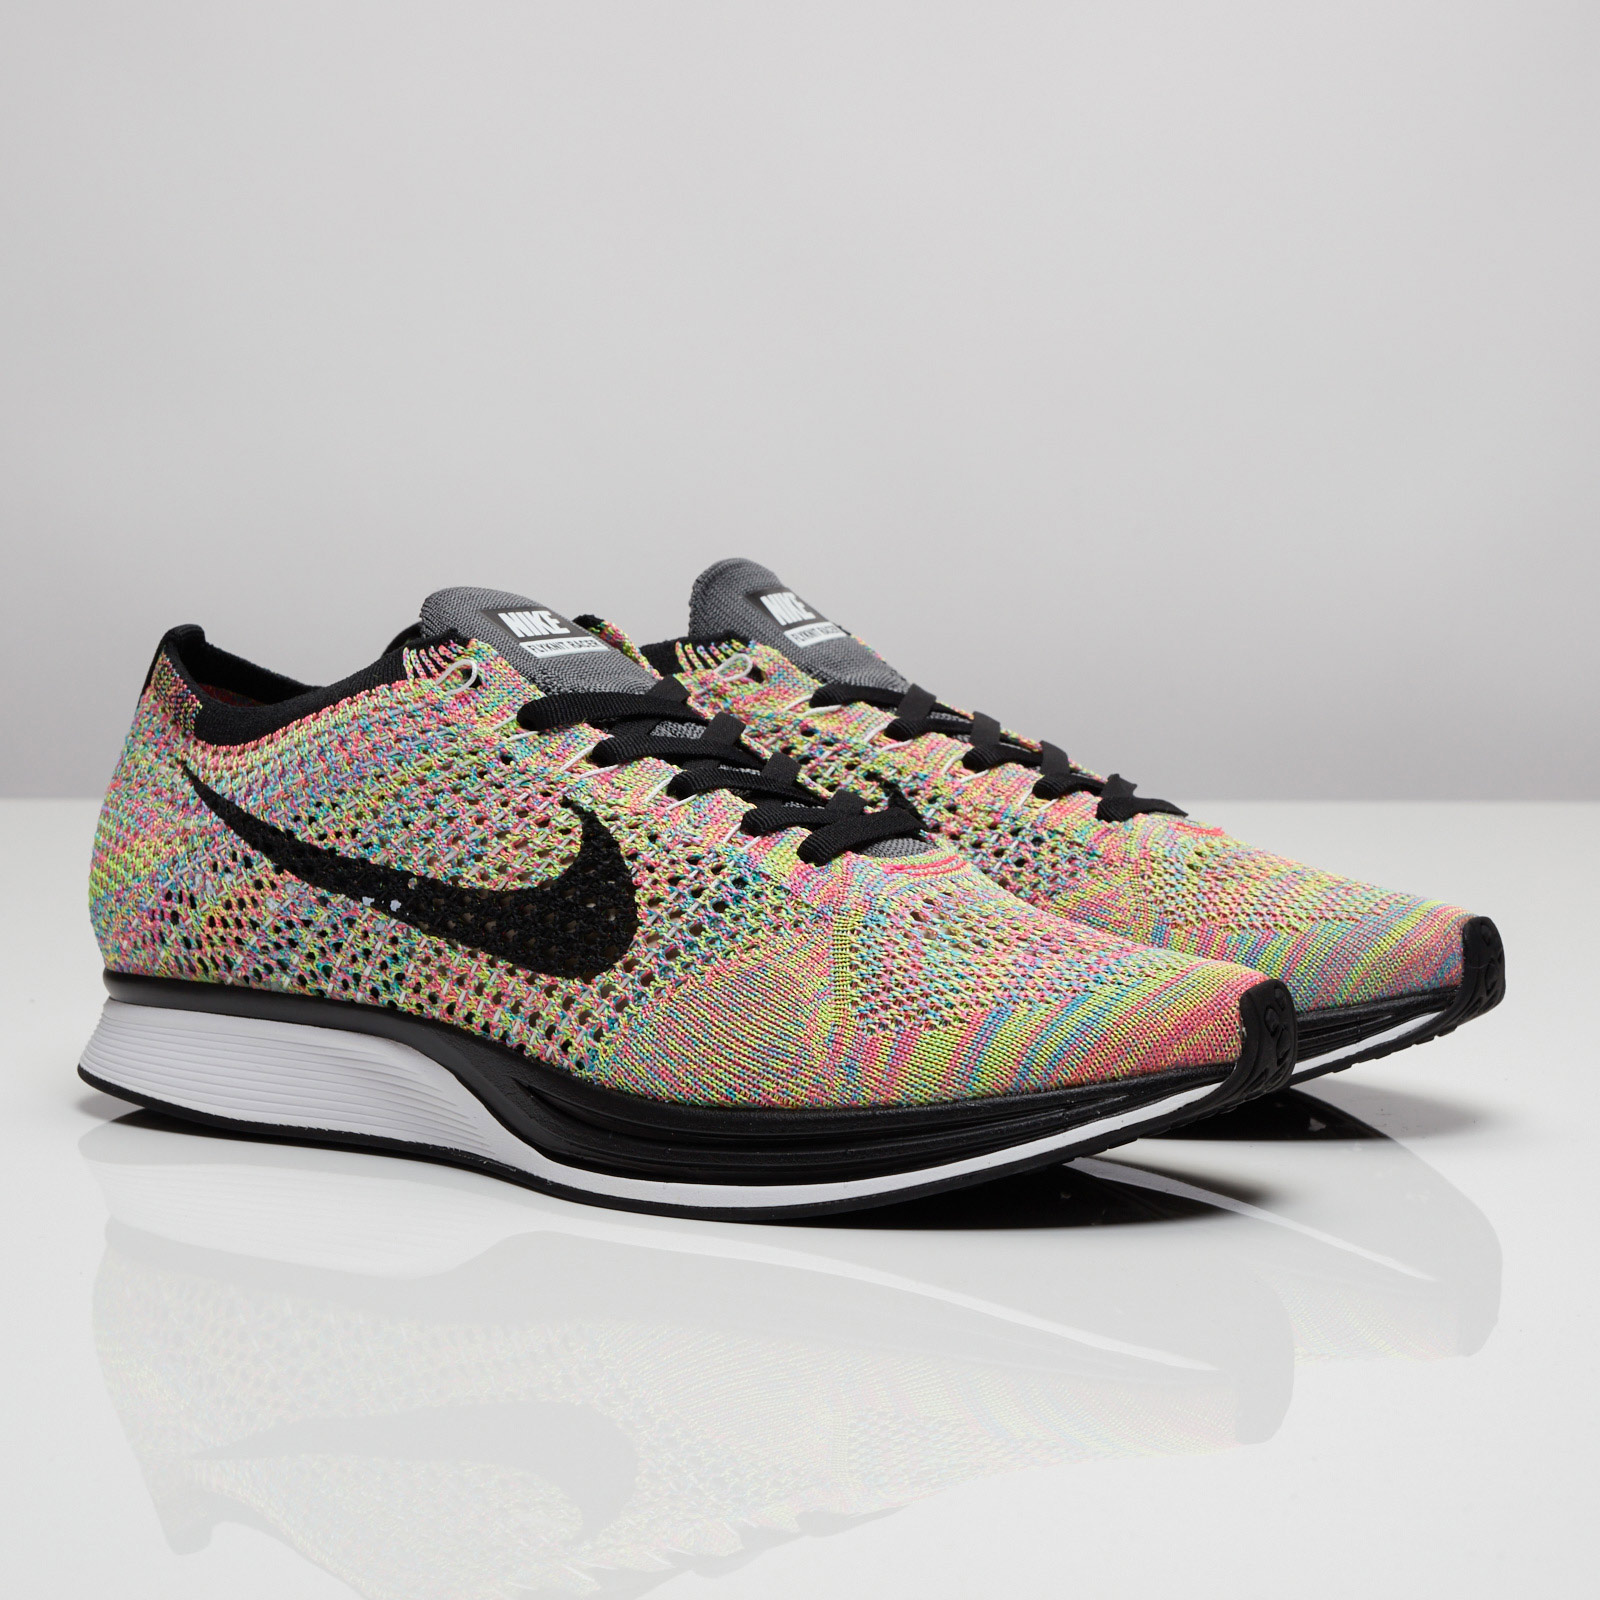 d89001a6b22 cheap nike flyknit racer rainbow 00c97 6b824  where to buy nike flyknit  racer 6f4c1 7df2f